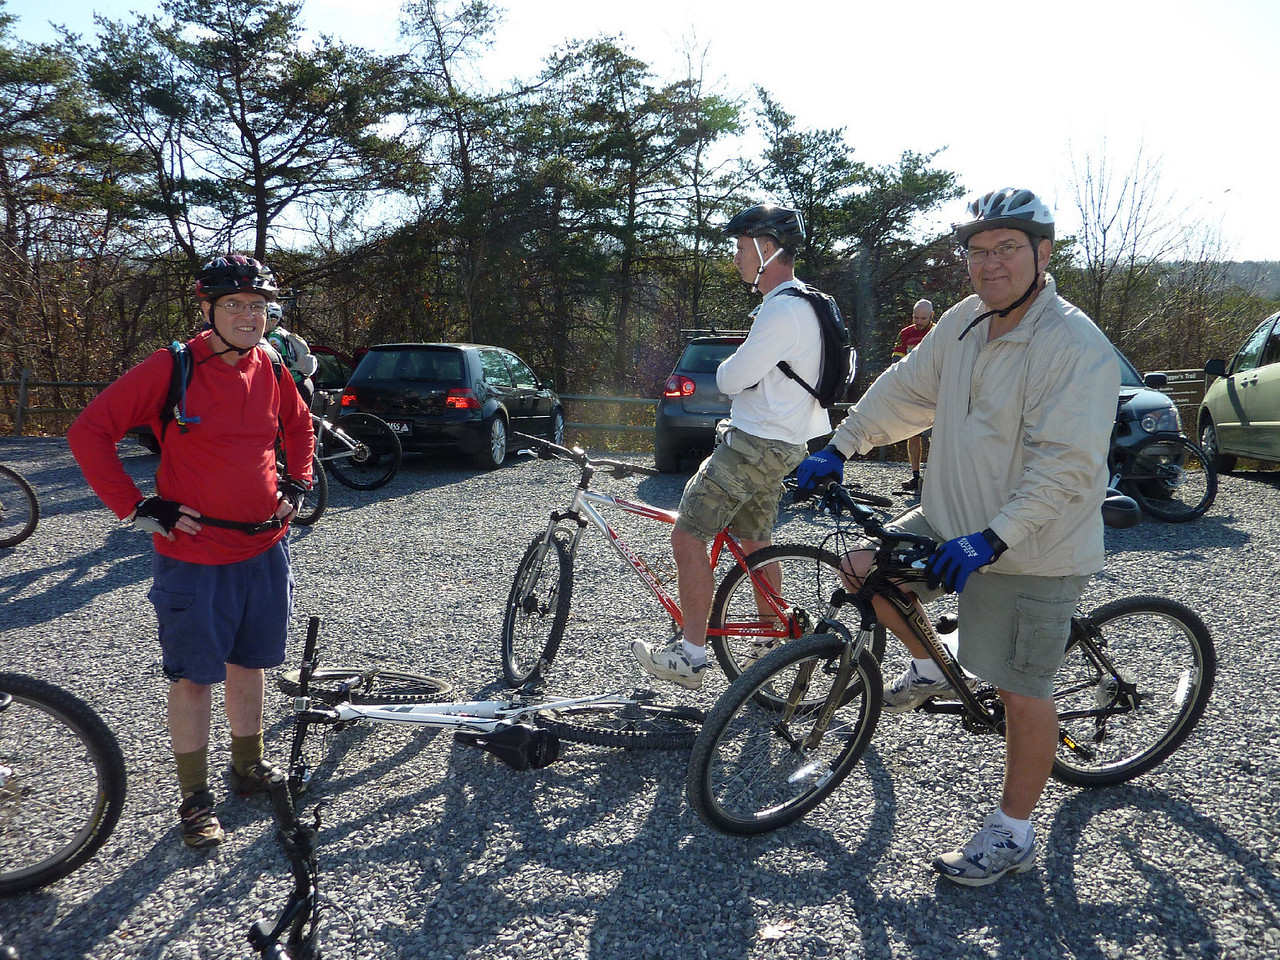 Brian brings some new comers to the trails, Bill & Walt.